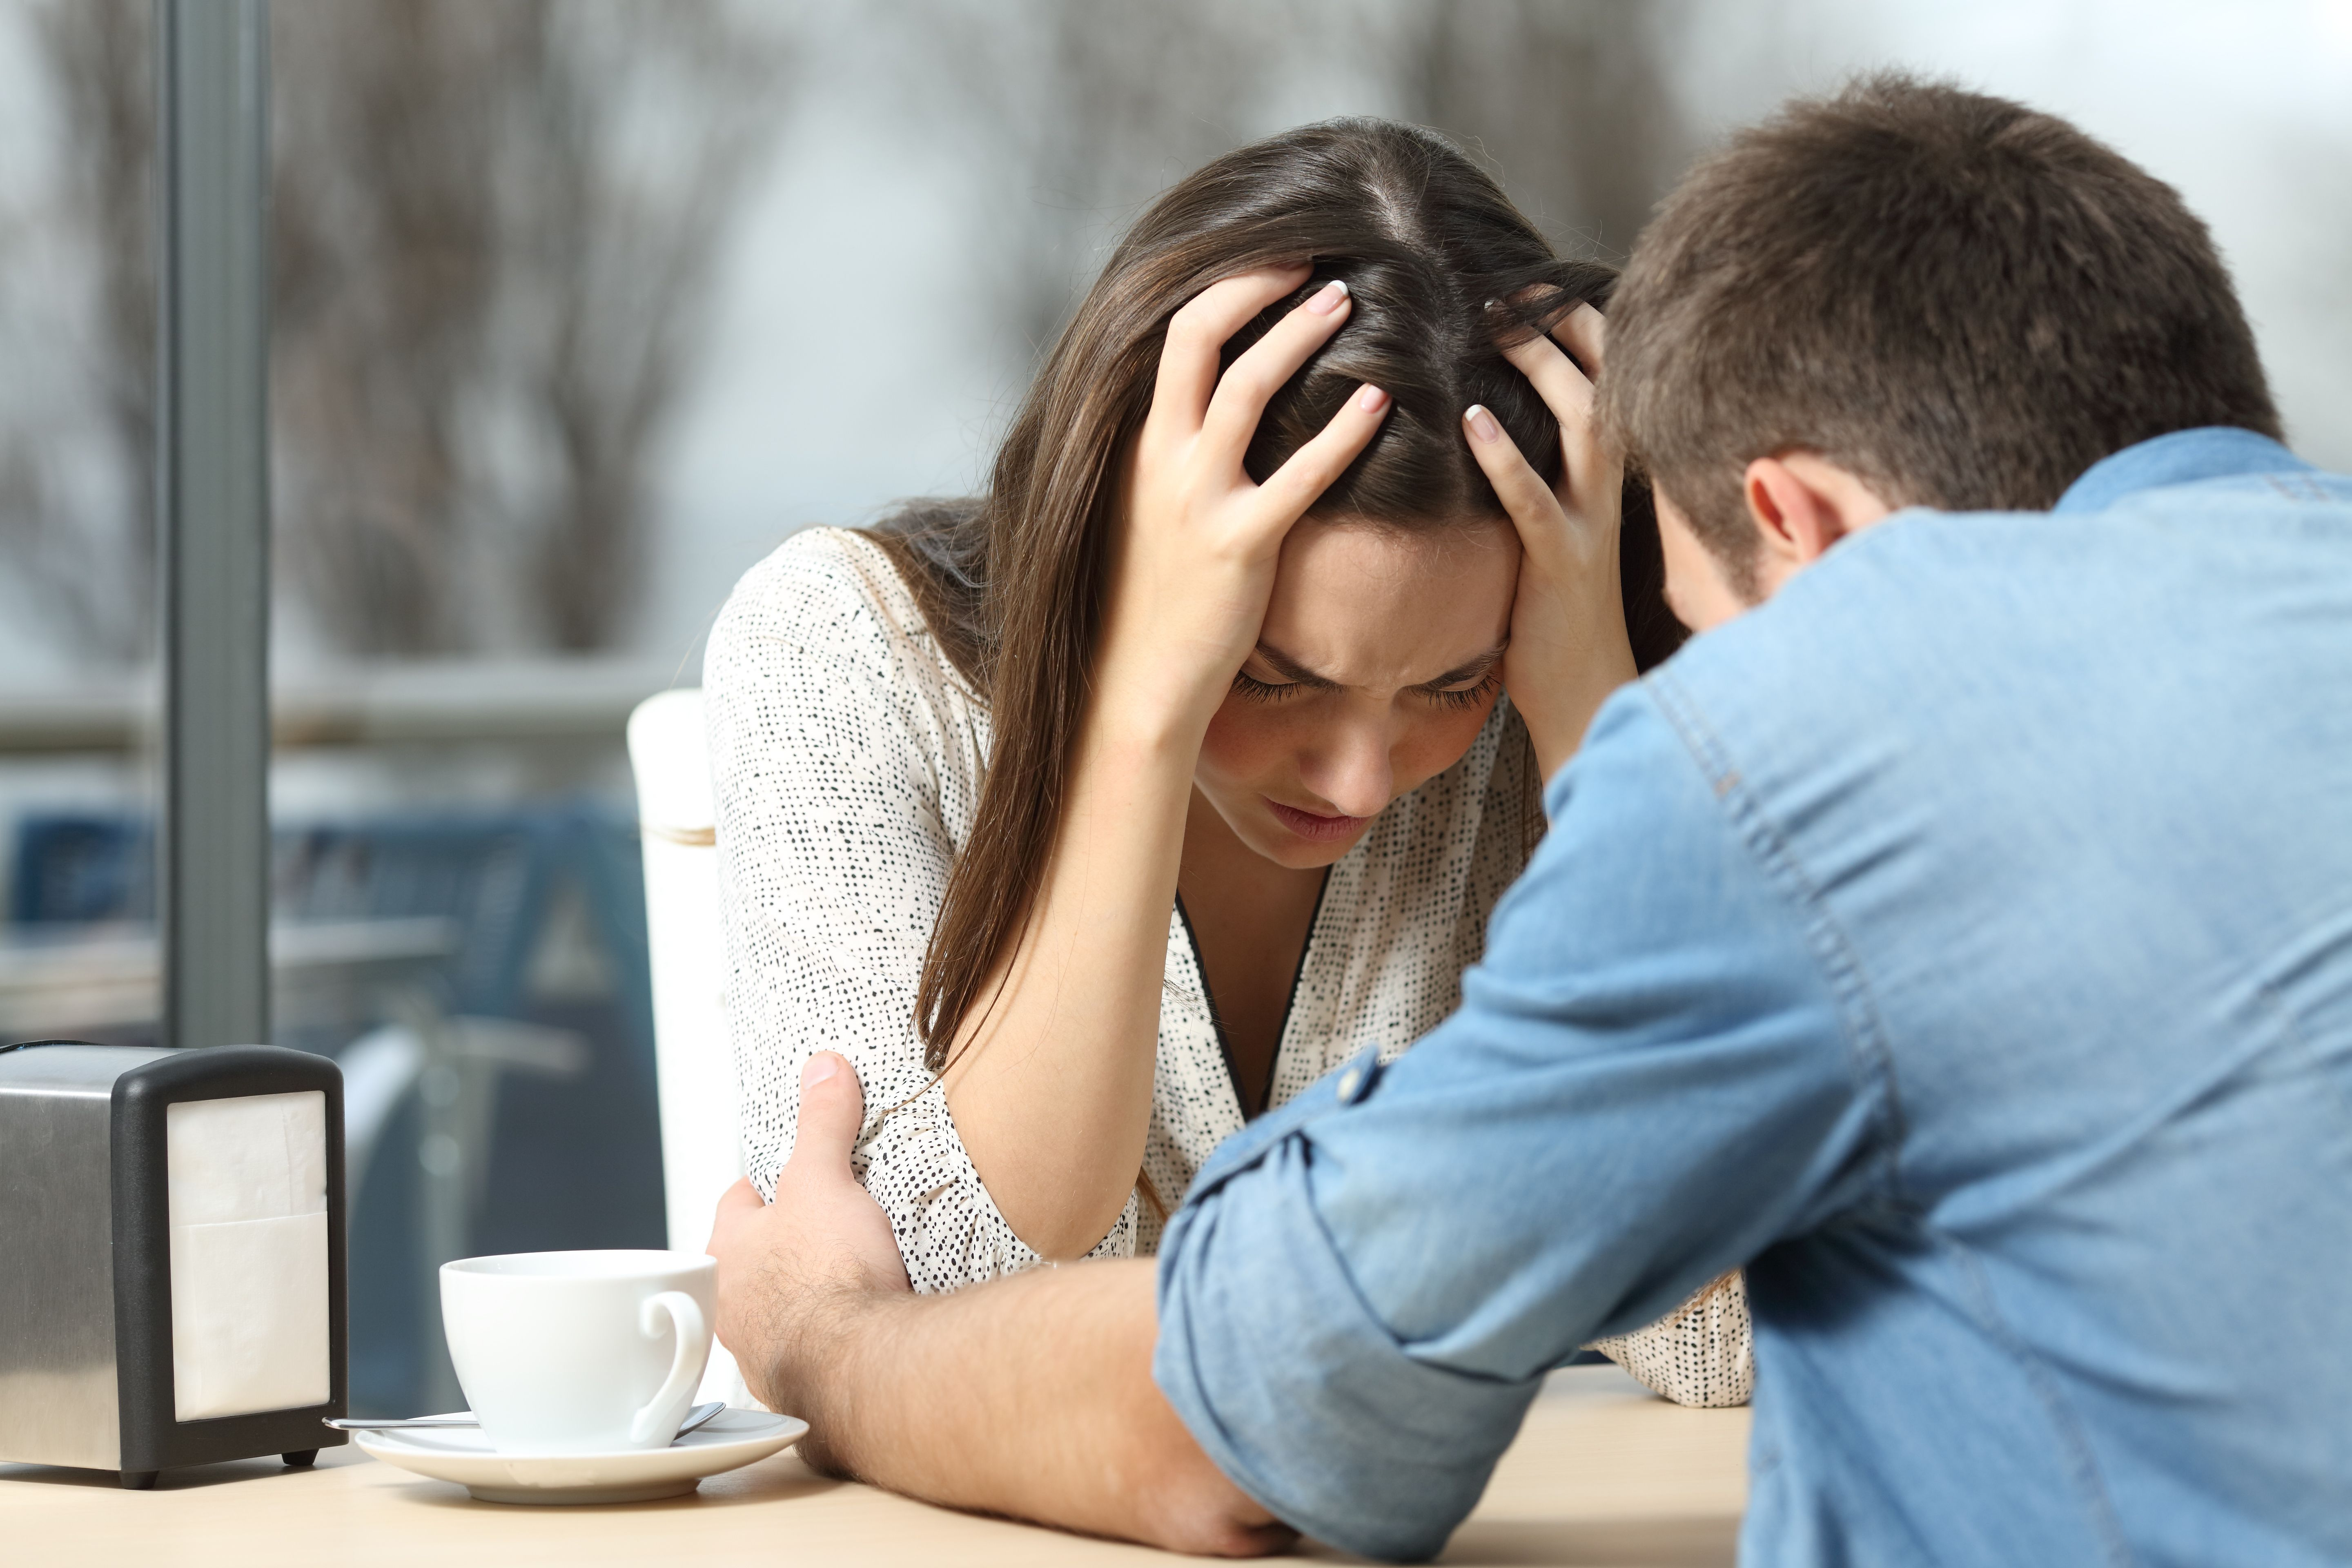 Woman looking stressed with her hands on her head while engaging with a man.   Photo: Shutterstock